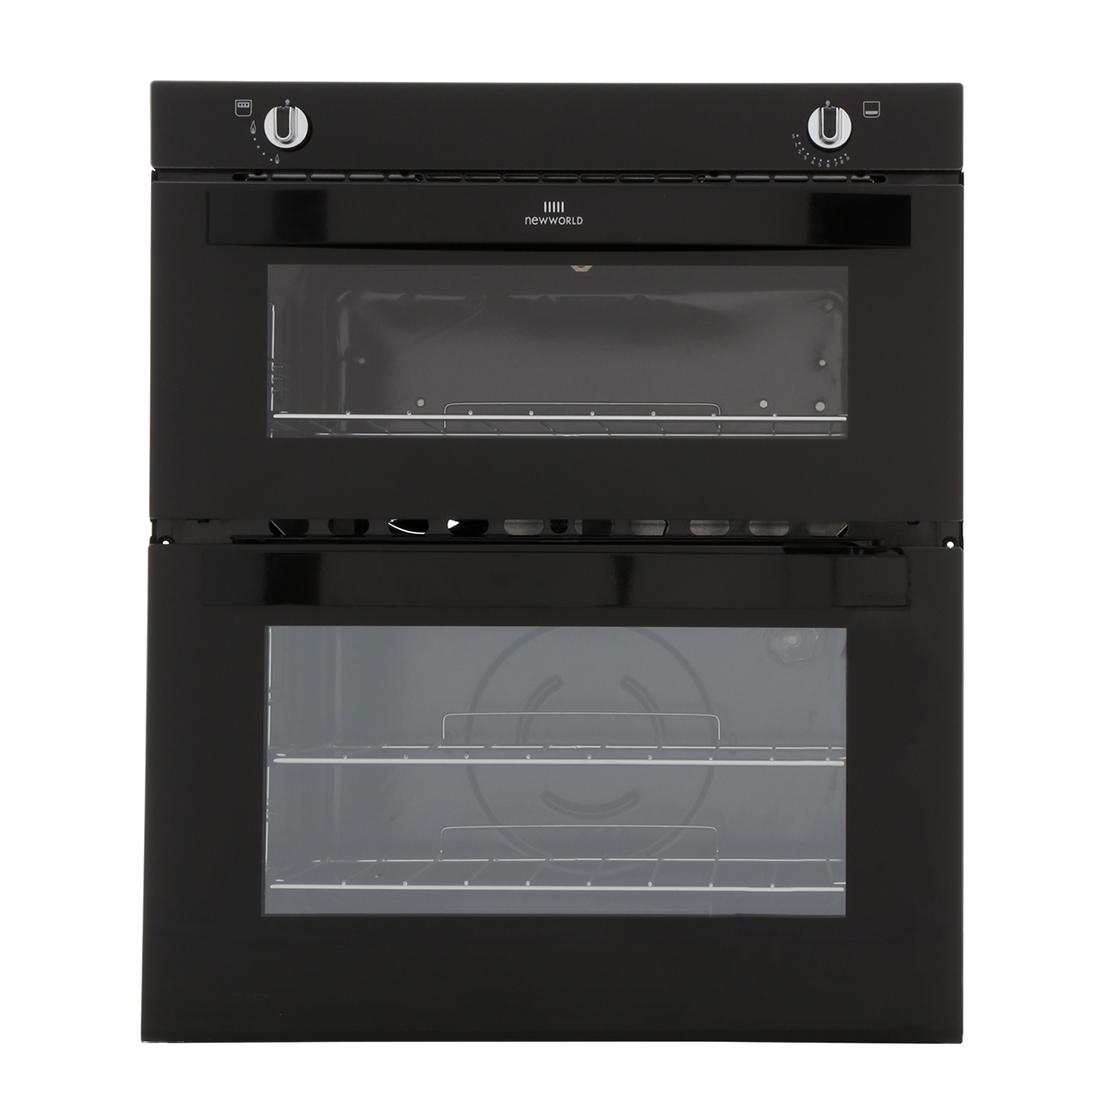 New World NW701G Black Built Under Gas Oven Separate Grill